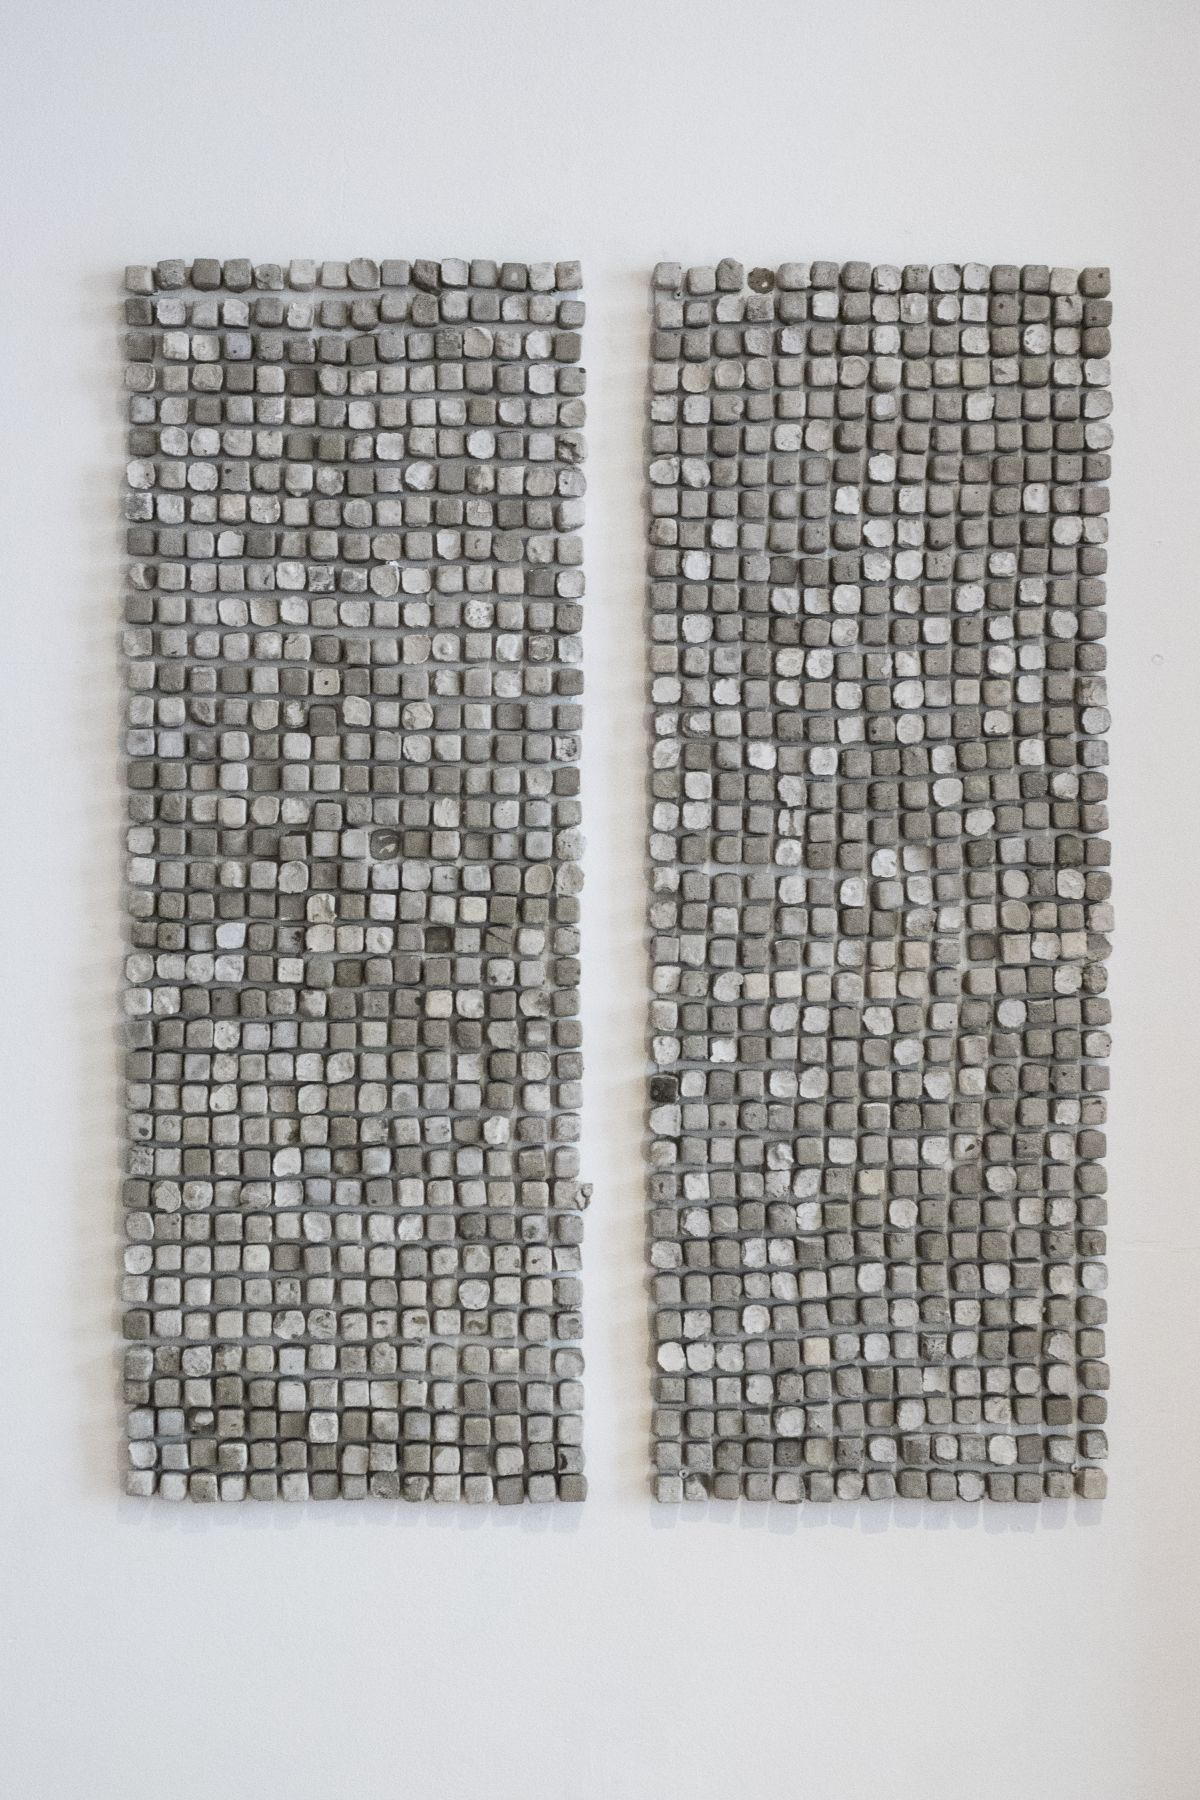 """SARA AL HADDAD  """"look at her"""", """"she looks as insecure as i am"""", (window 3) (detail) 2016, nails, concrete and metal sheets, 41 x 15 inches."""